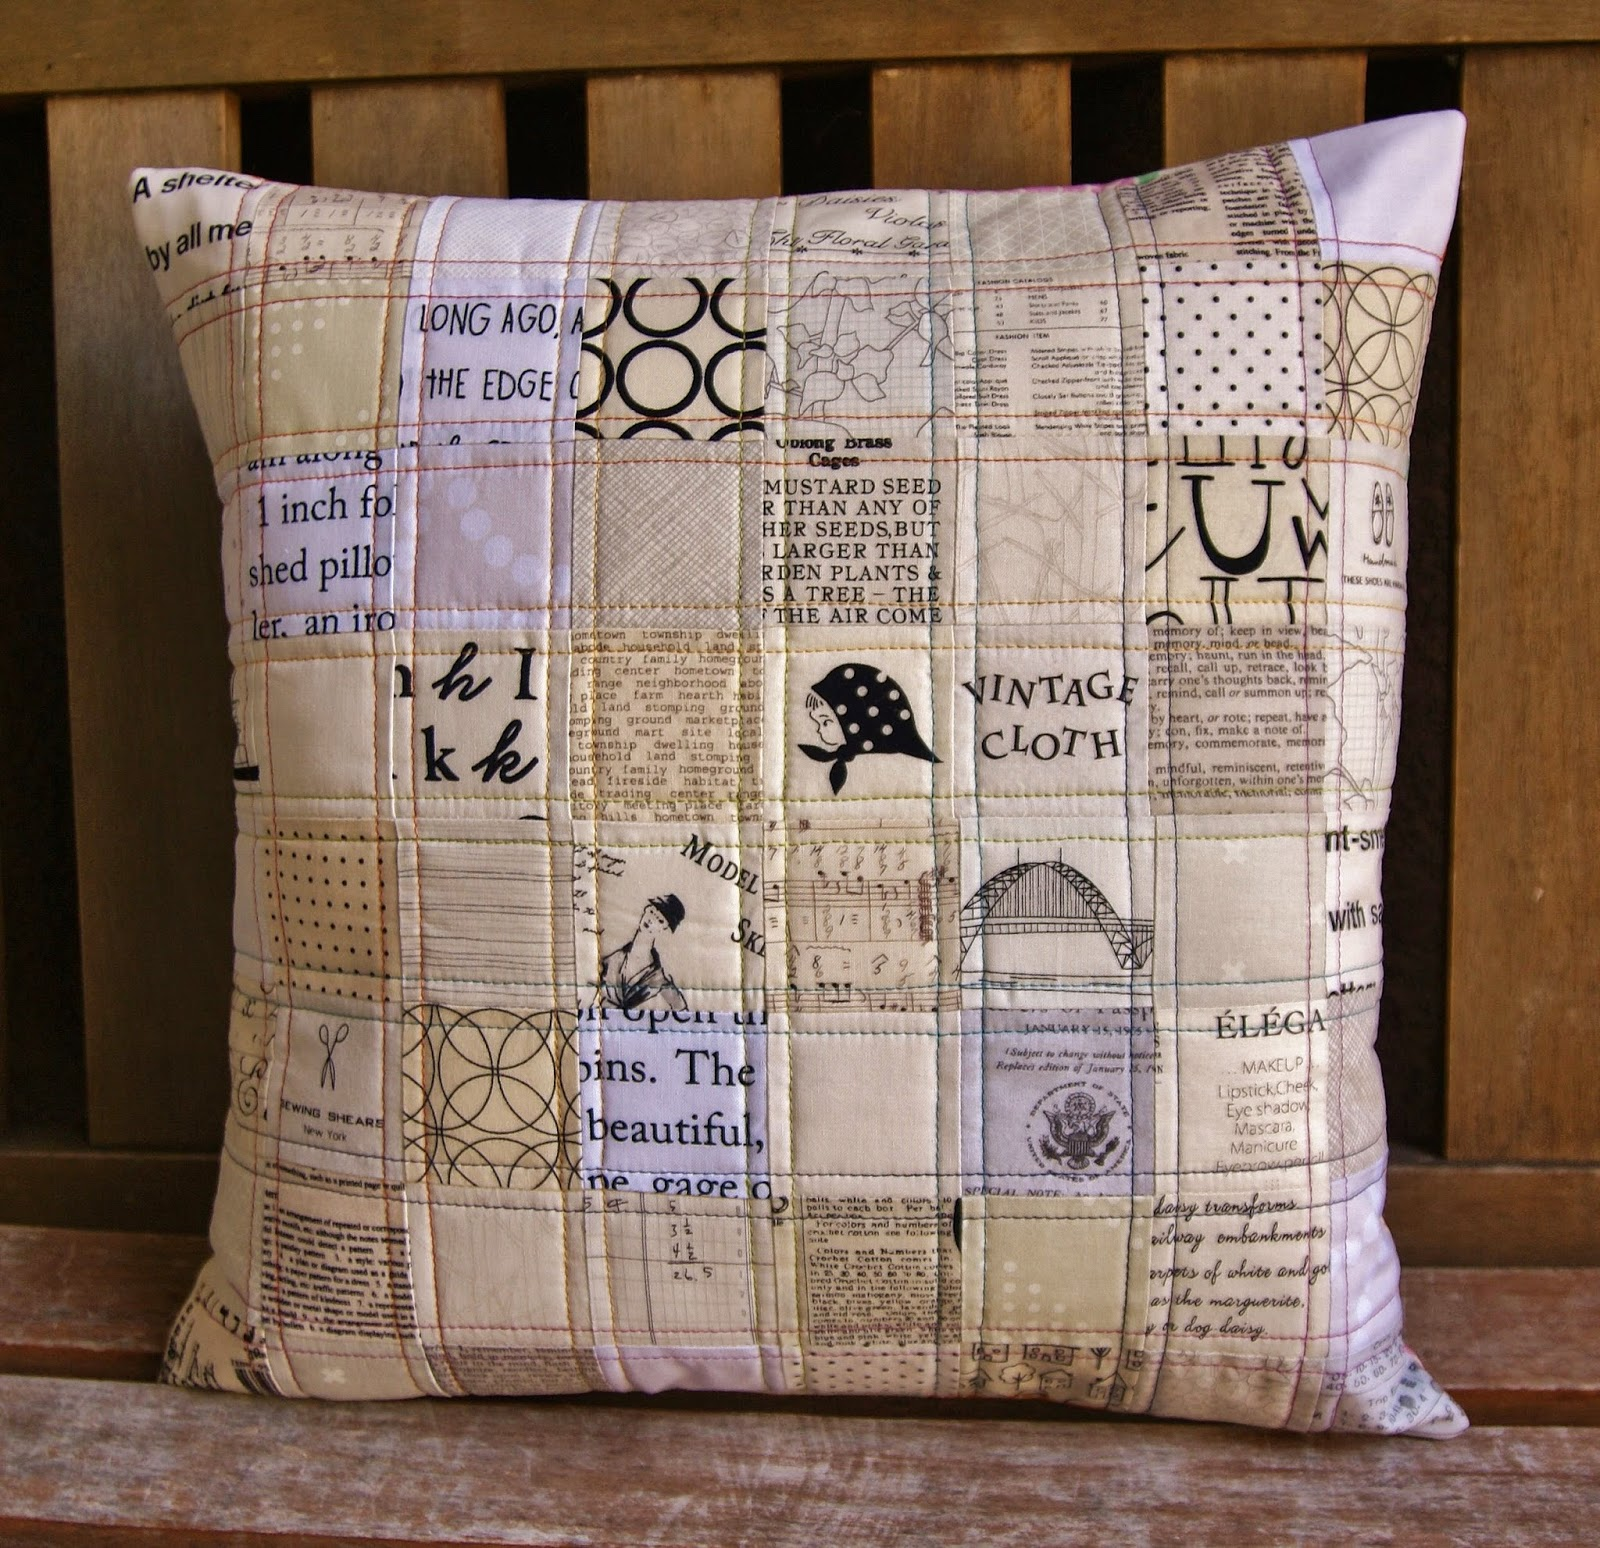 Silent Film Pillow by Heidi Staples for Quilt Now Magazine